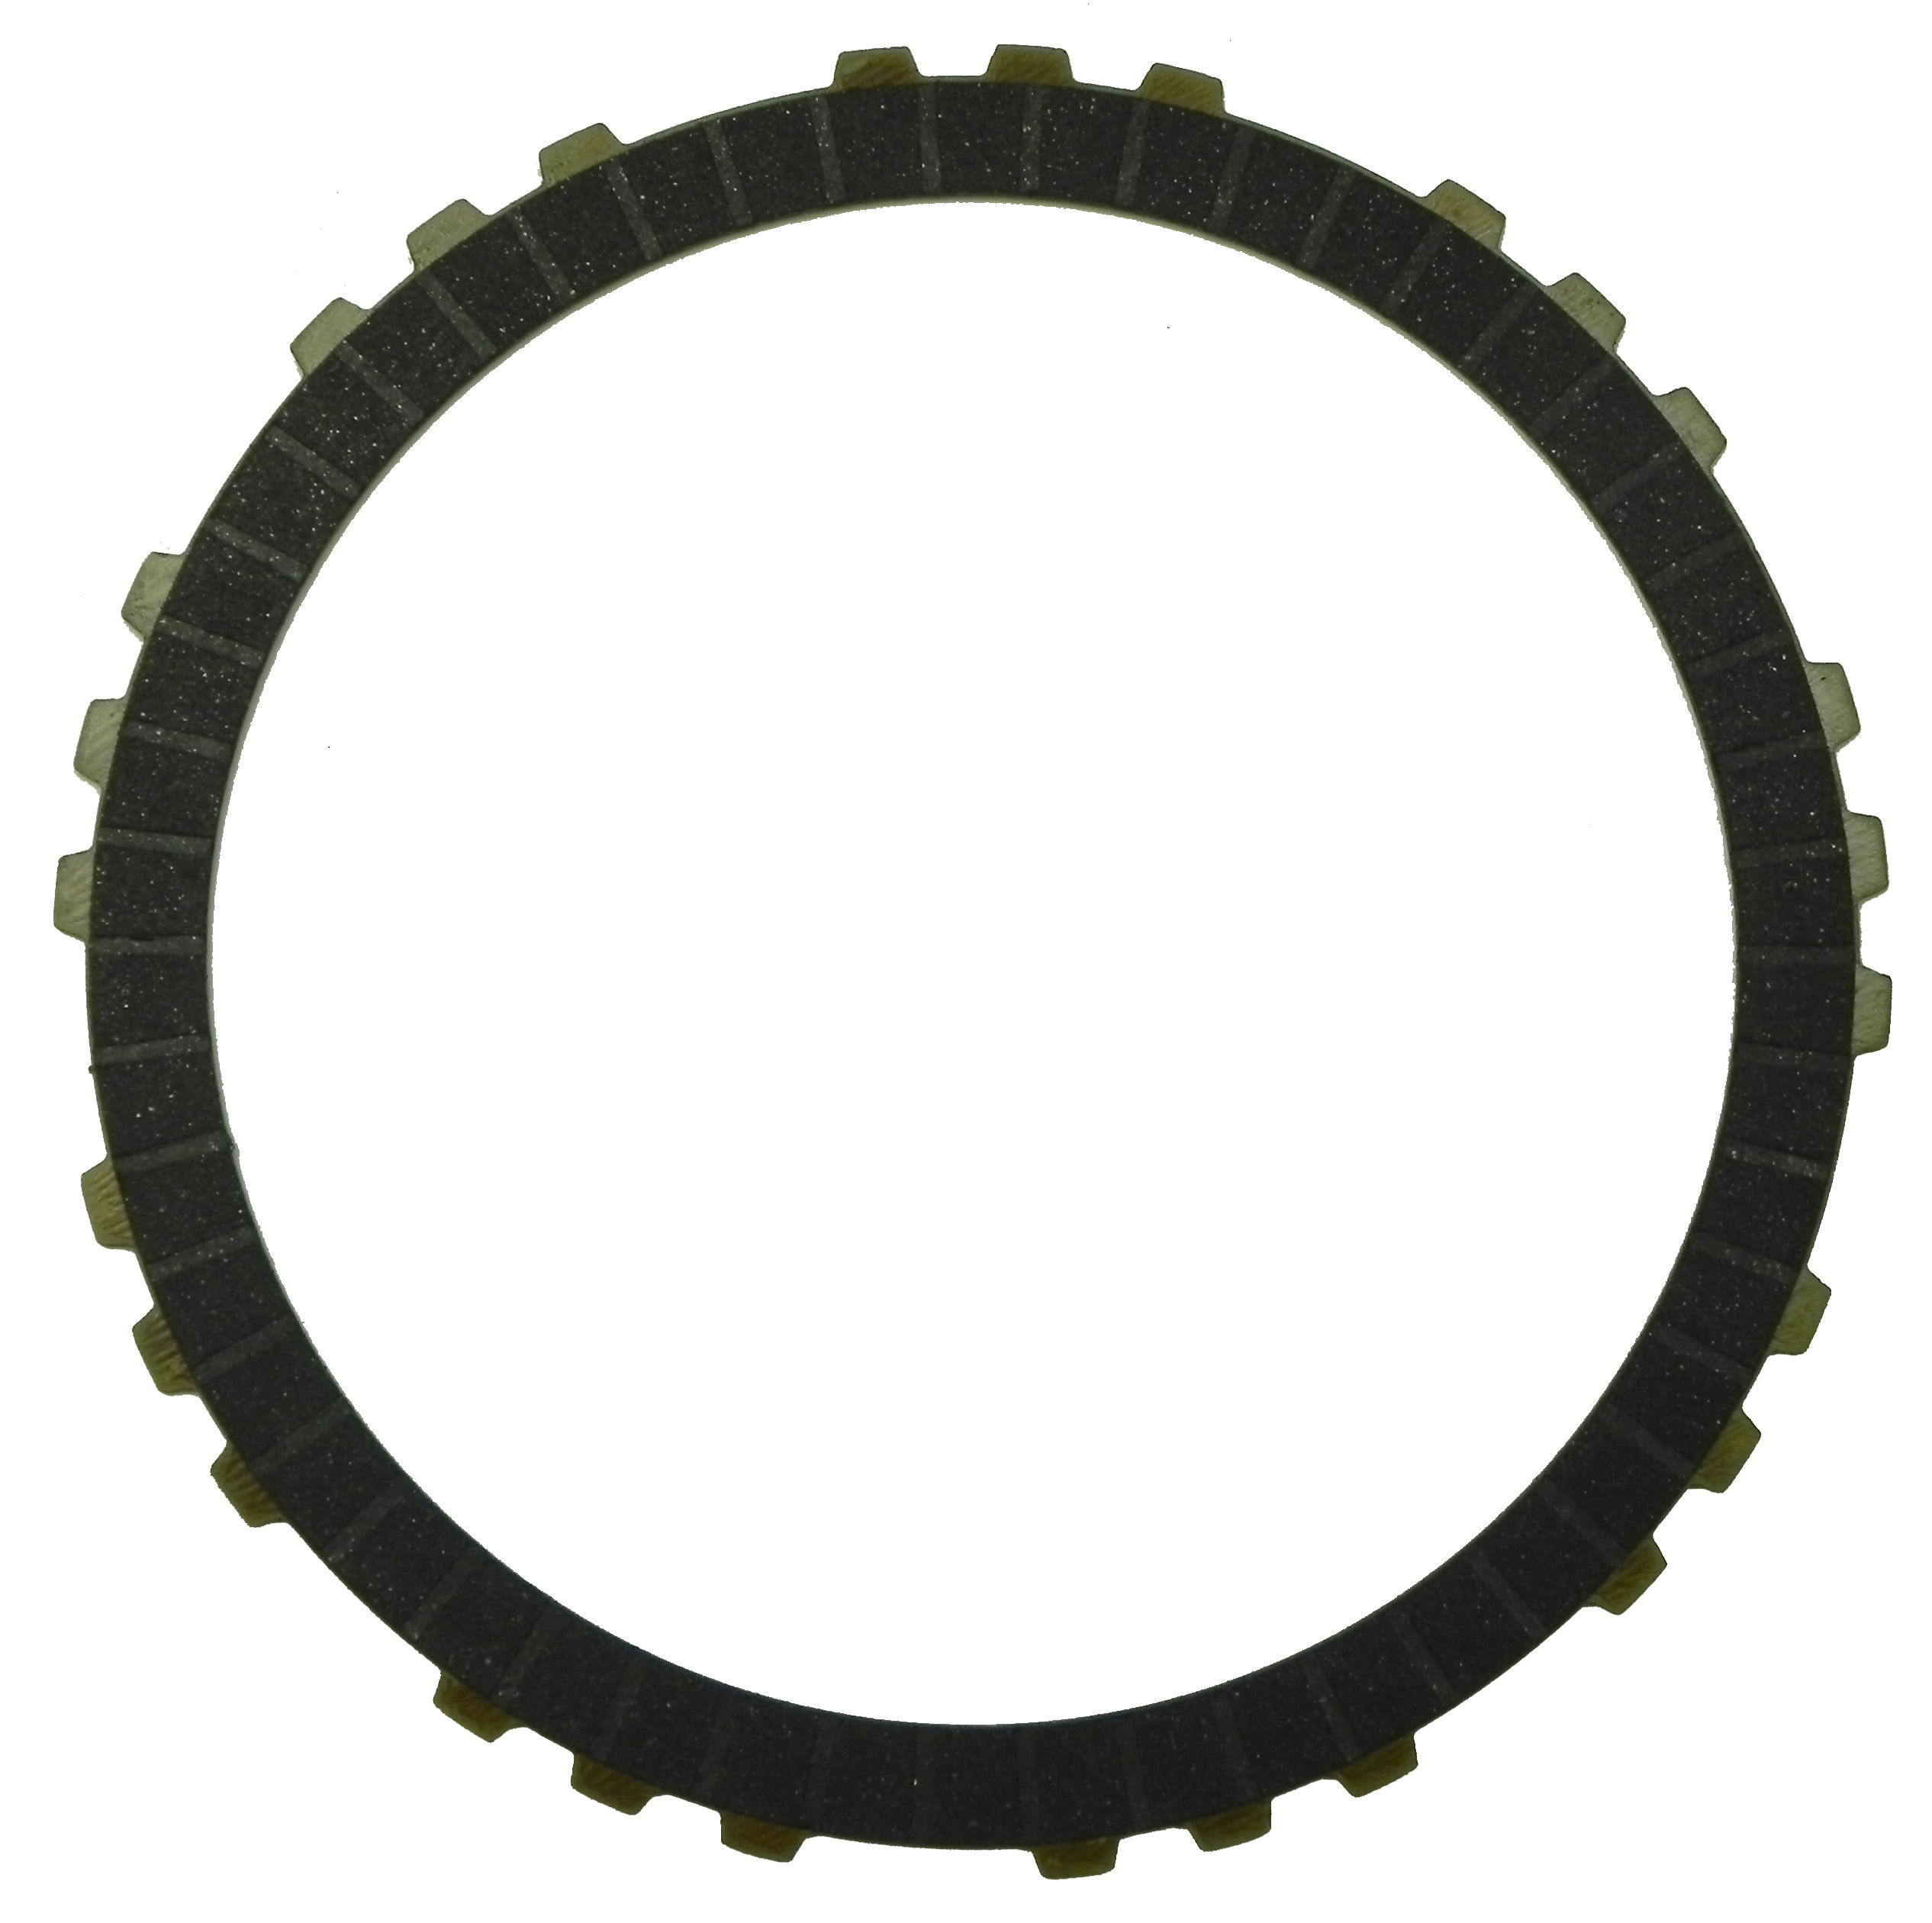 R560635 | 2009-ON Friction Clutch Plate High Energy 3, 5, Reverse Single Sided, OD Spline High Energy